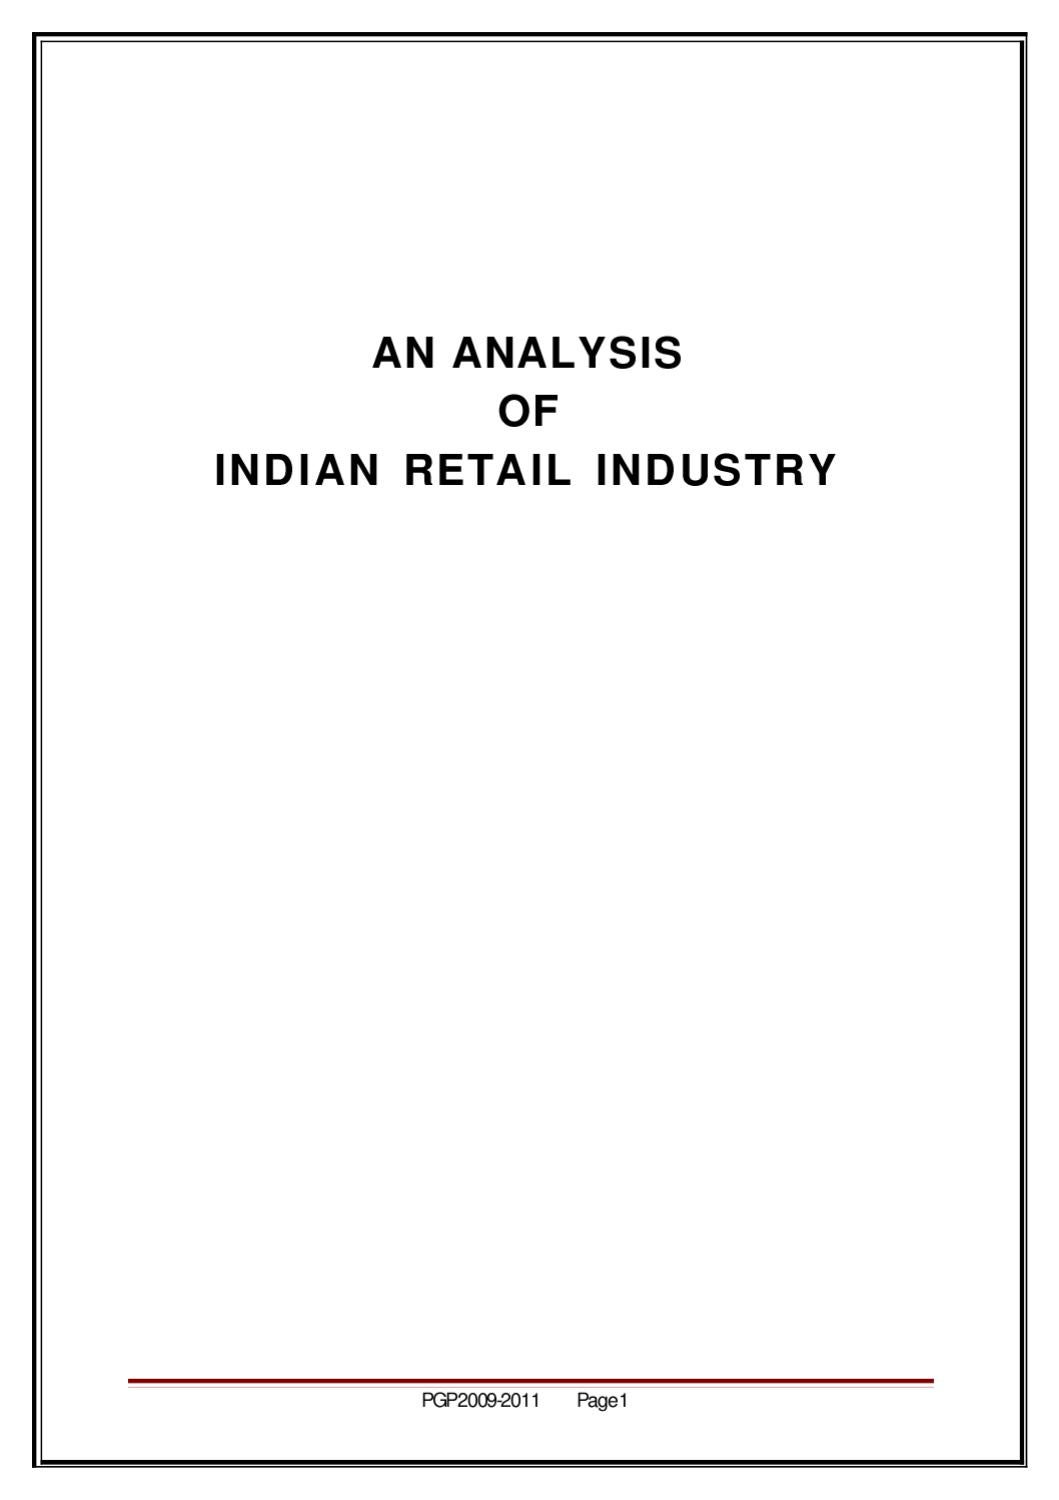 AN ANALYSIS OF INDIAN RETAIL INDUSTRY by Sanjay Gupta - issuu